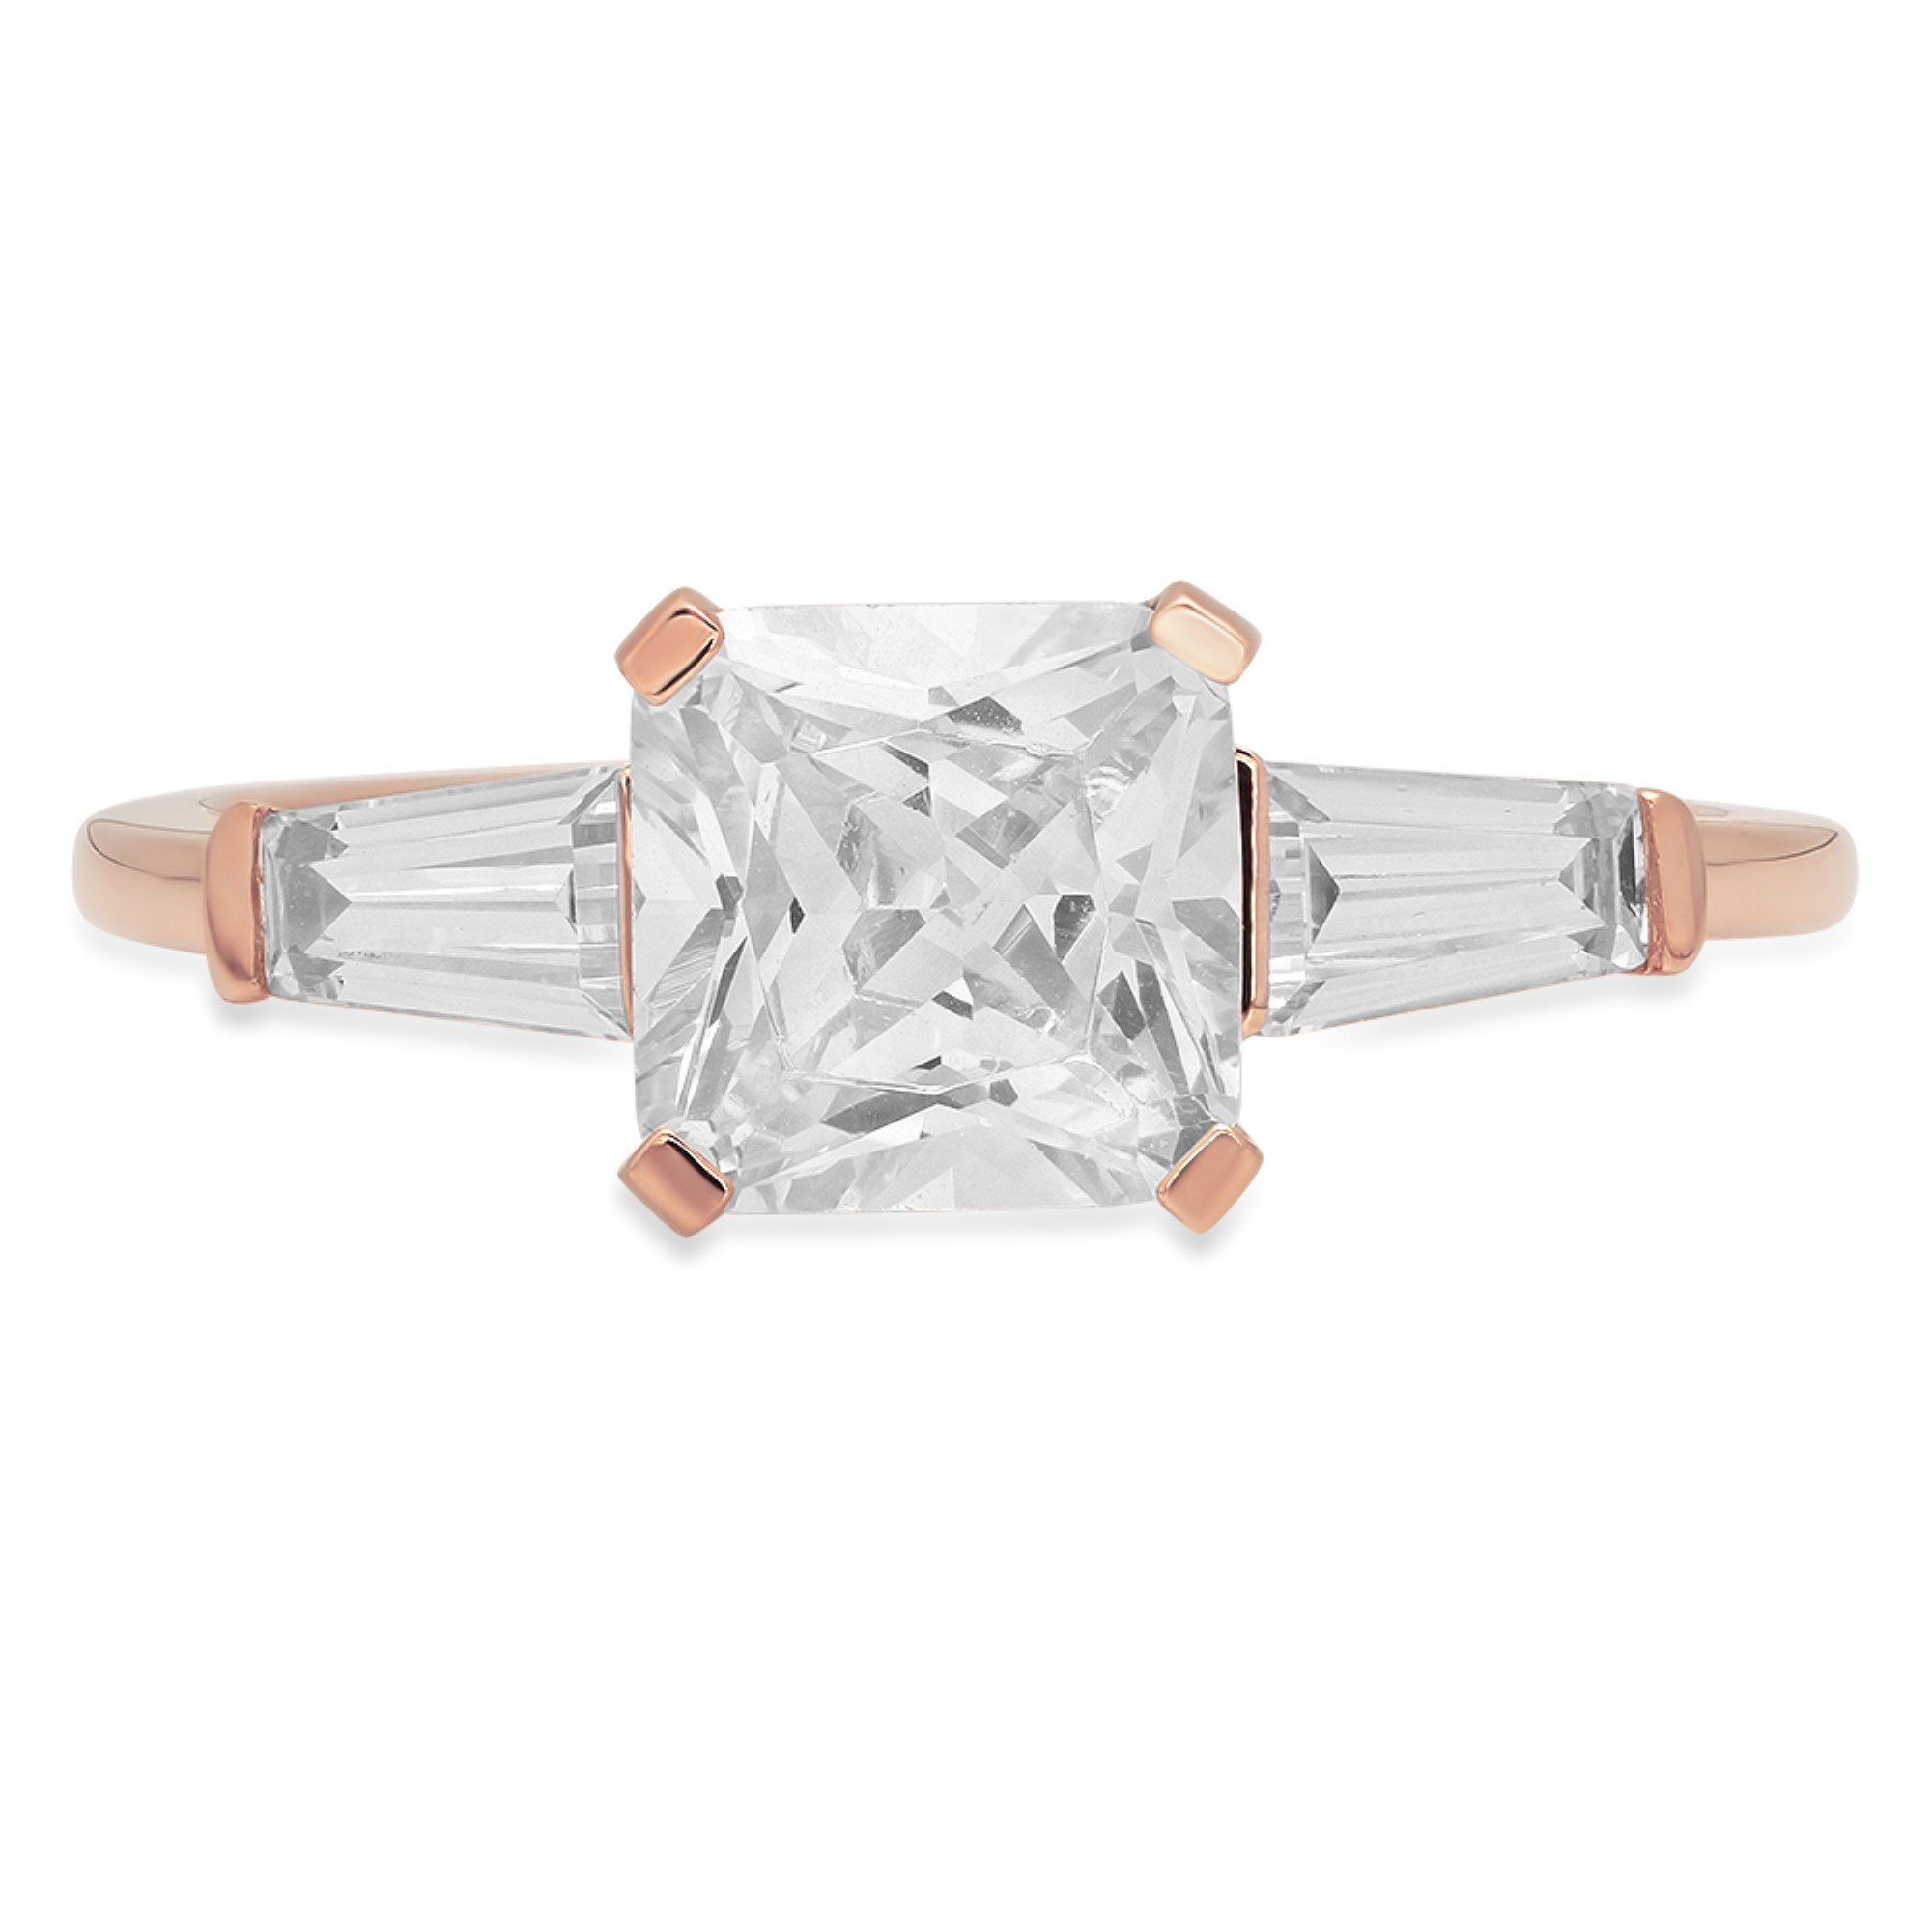 Brilliant Square Emerald Baguette Cut Solitaire 3-Stone Engagement Statement Bridal Wedding Anniversary Promise Petite Ring Solid 14K Rose Gold for Women 1.42ct, 10.75